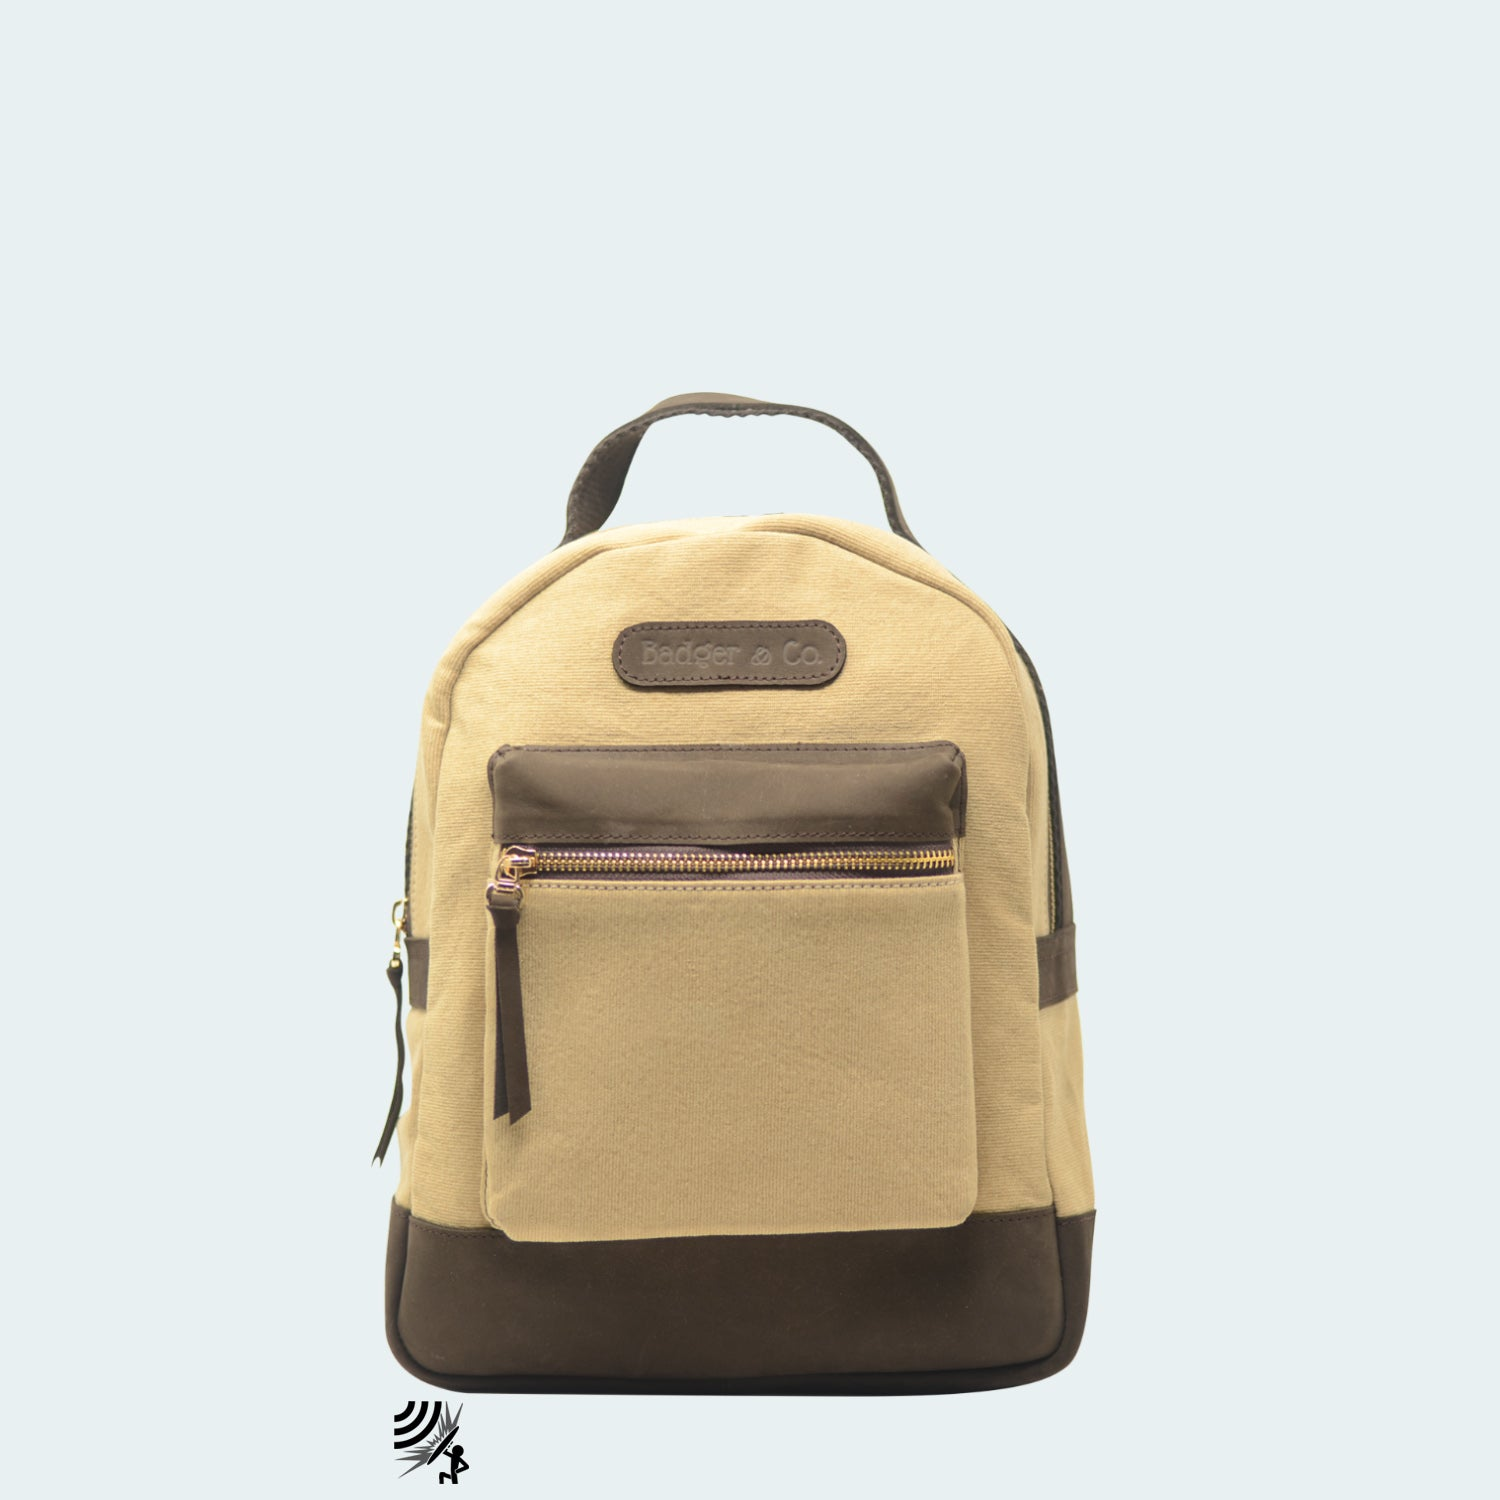 Mini Denim Backpack - Tan with Hickory Brown Leather